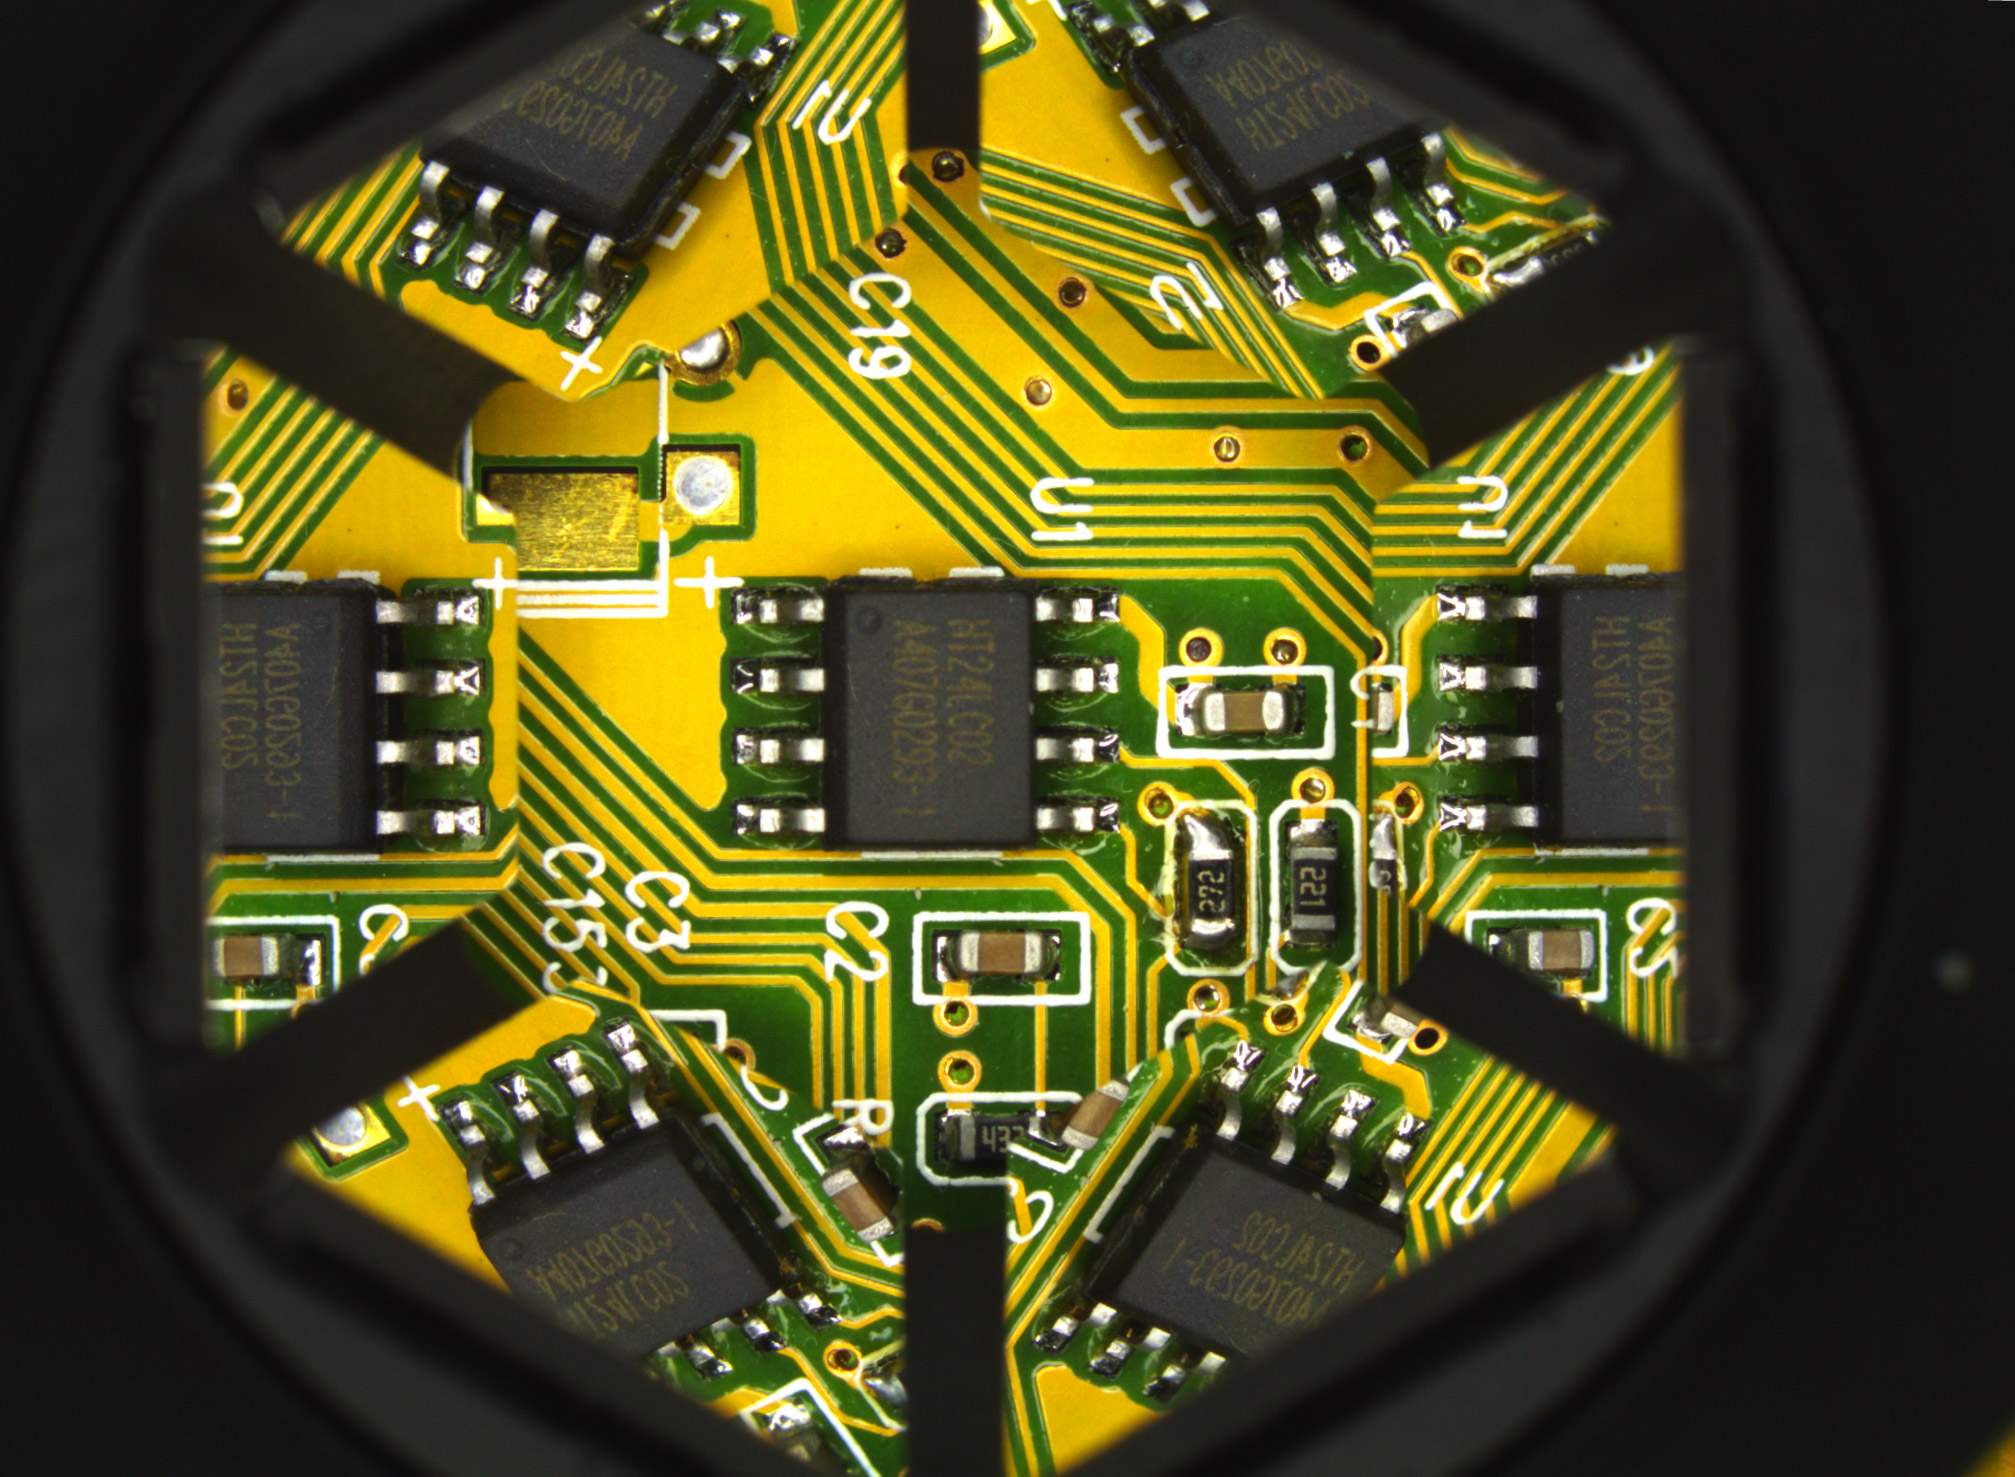 <b>SMD component inspection</b>: integrated circuit position, rotation, pin integrity and bonding can be checked.